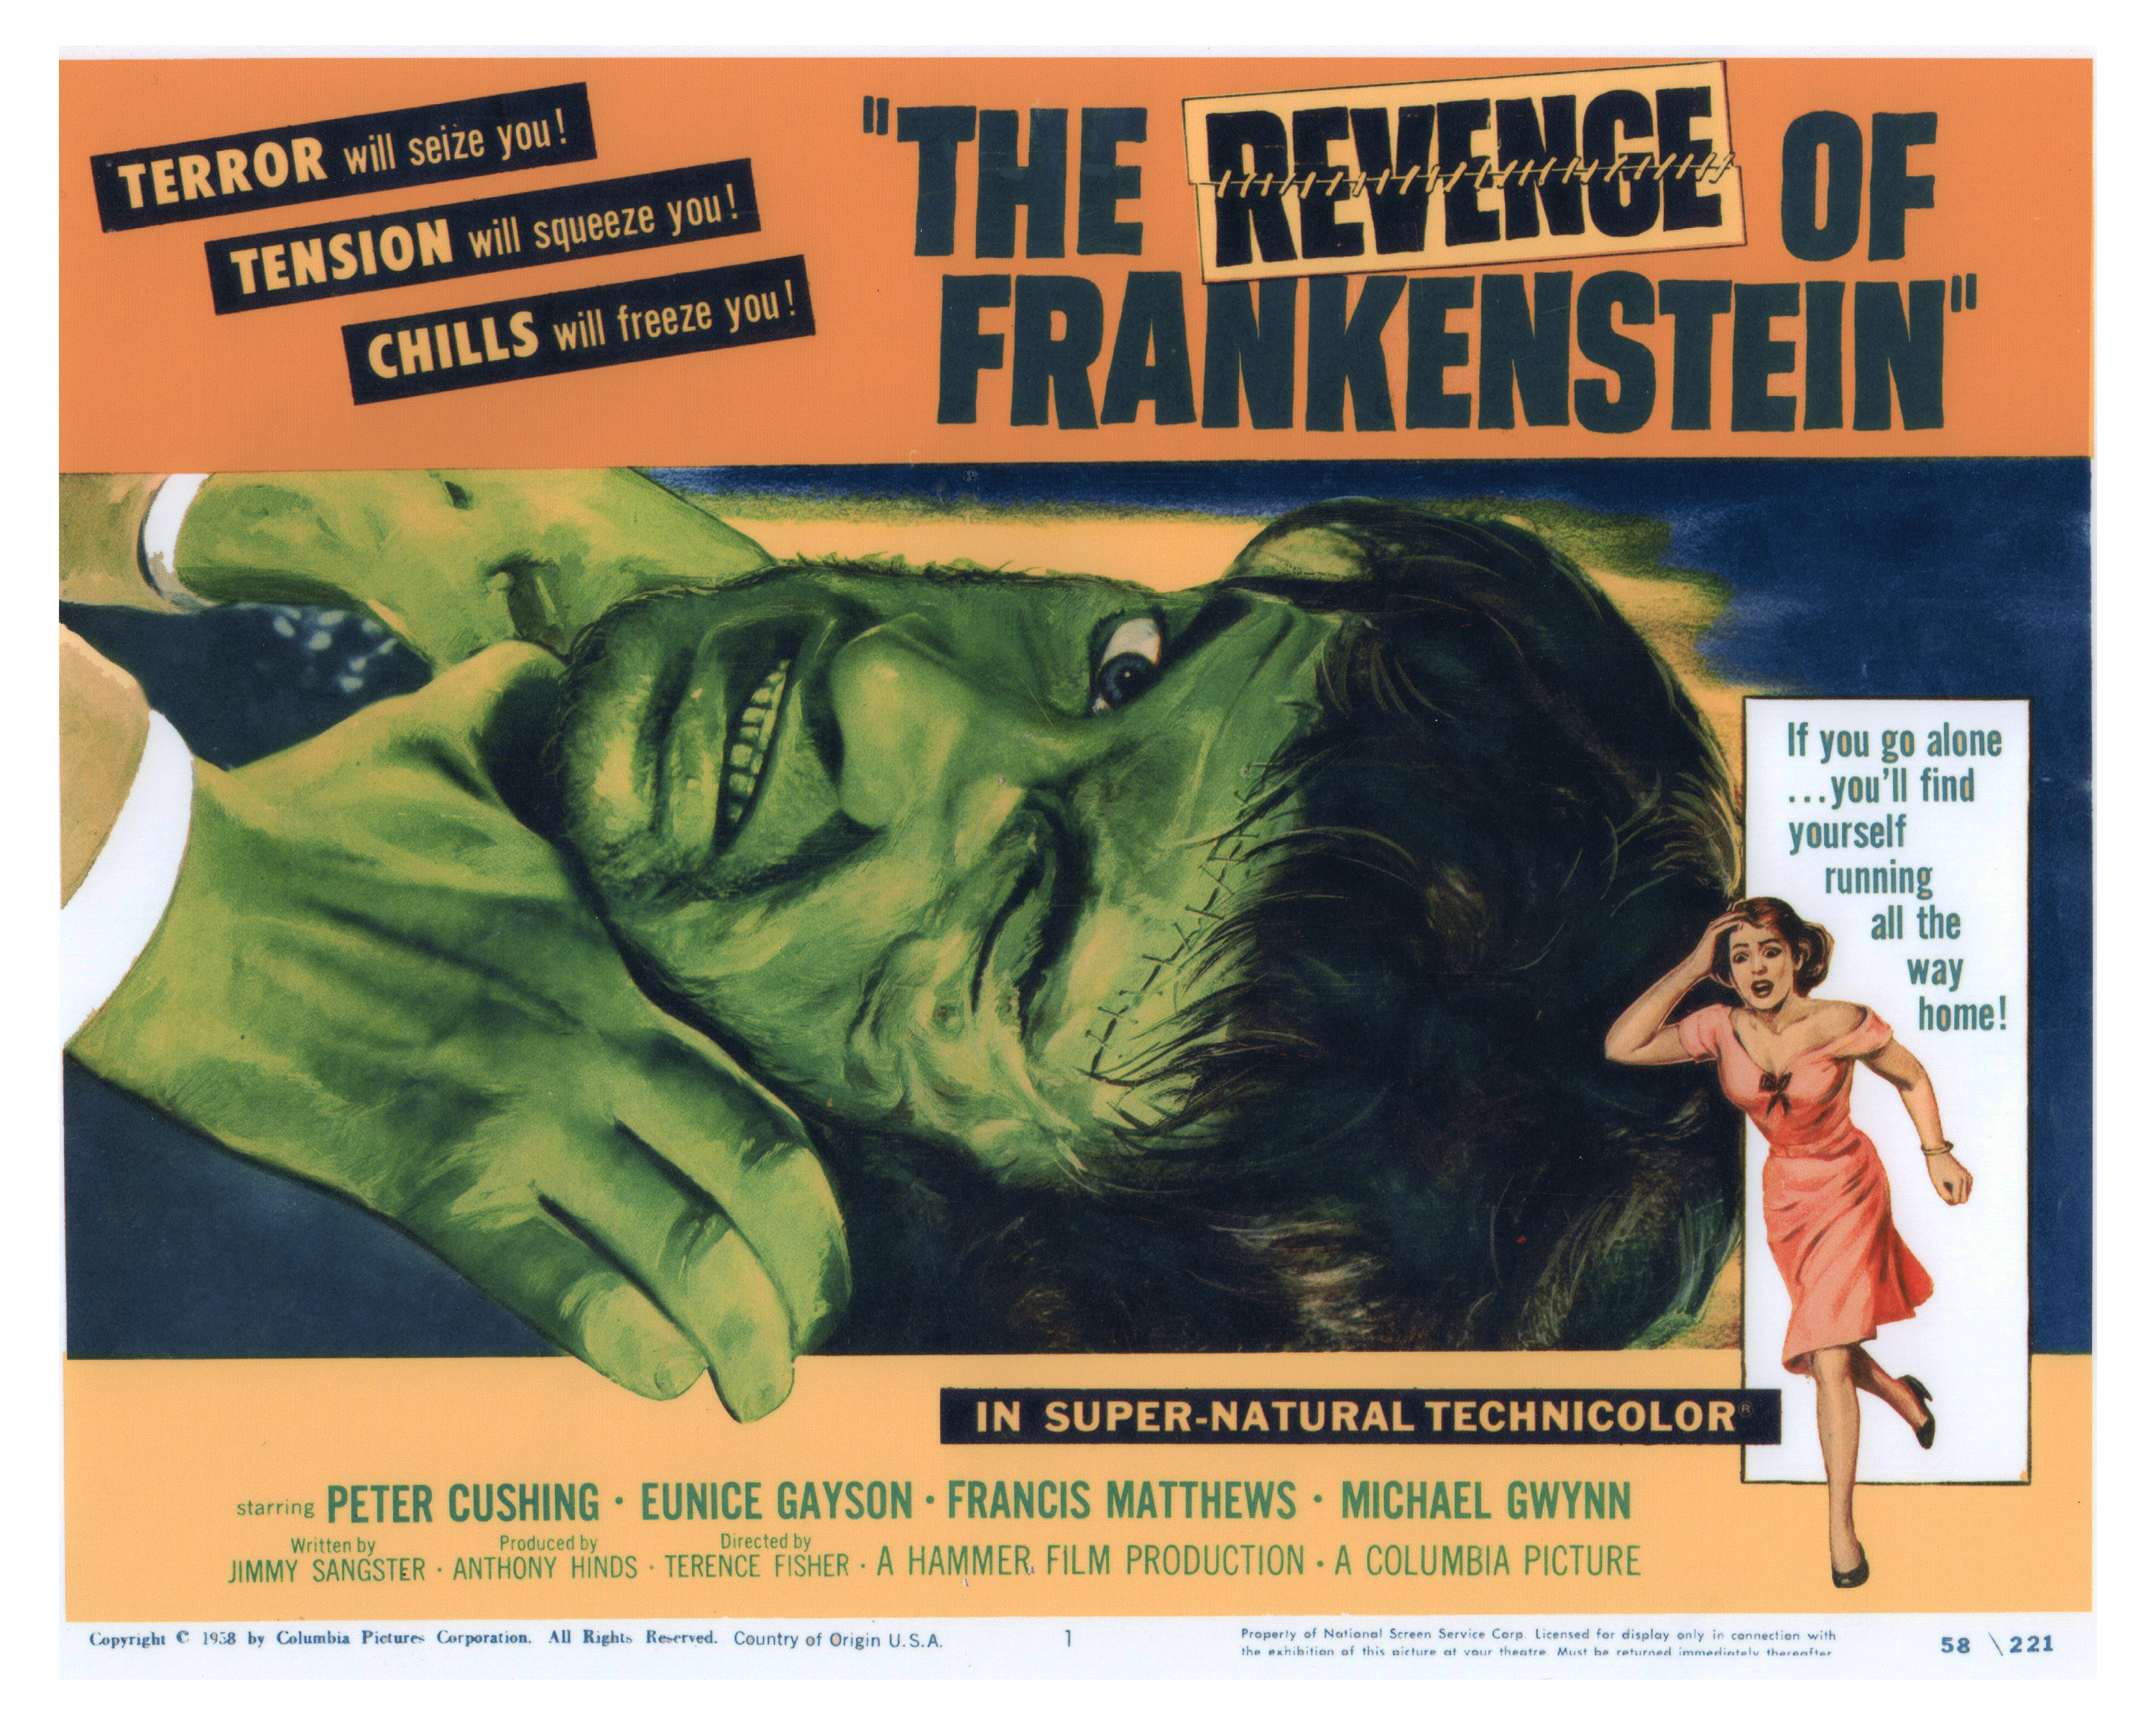 frankenstein essays on revenge Essay on frankenstein: free examples of essays, research and term papers examples of frankenstein essay topics, questions and thesis satatements.